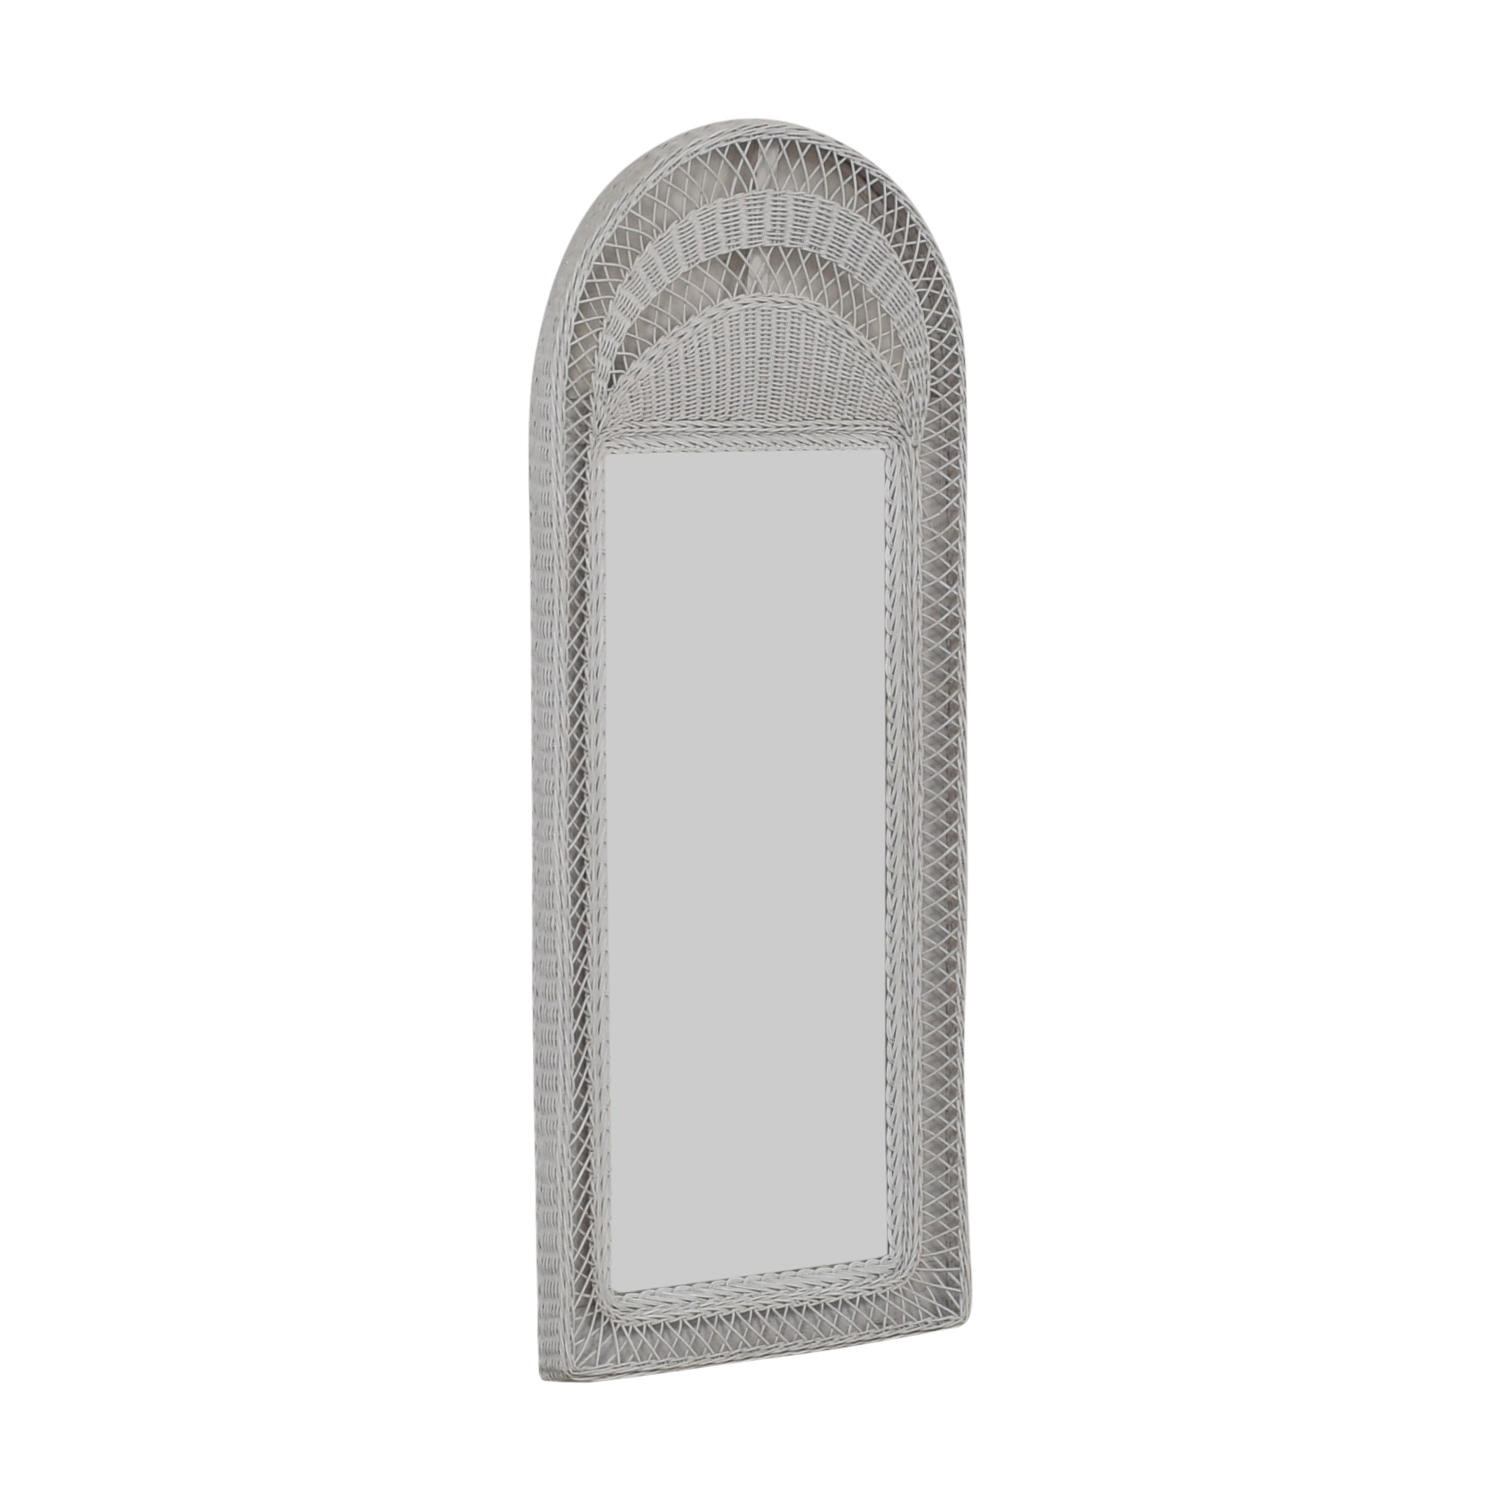 White Wicker Floor Mirror dimensions